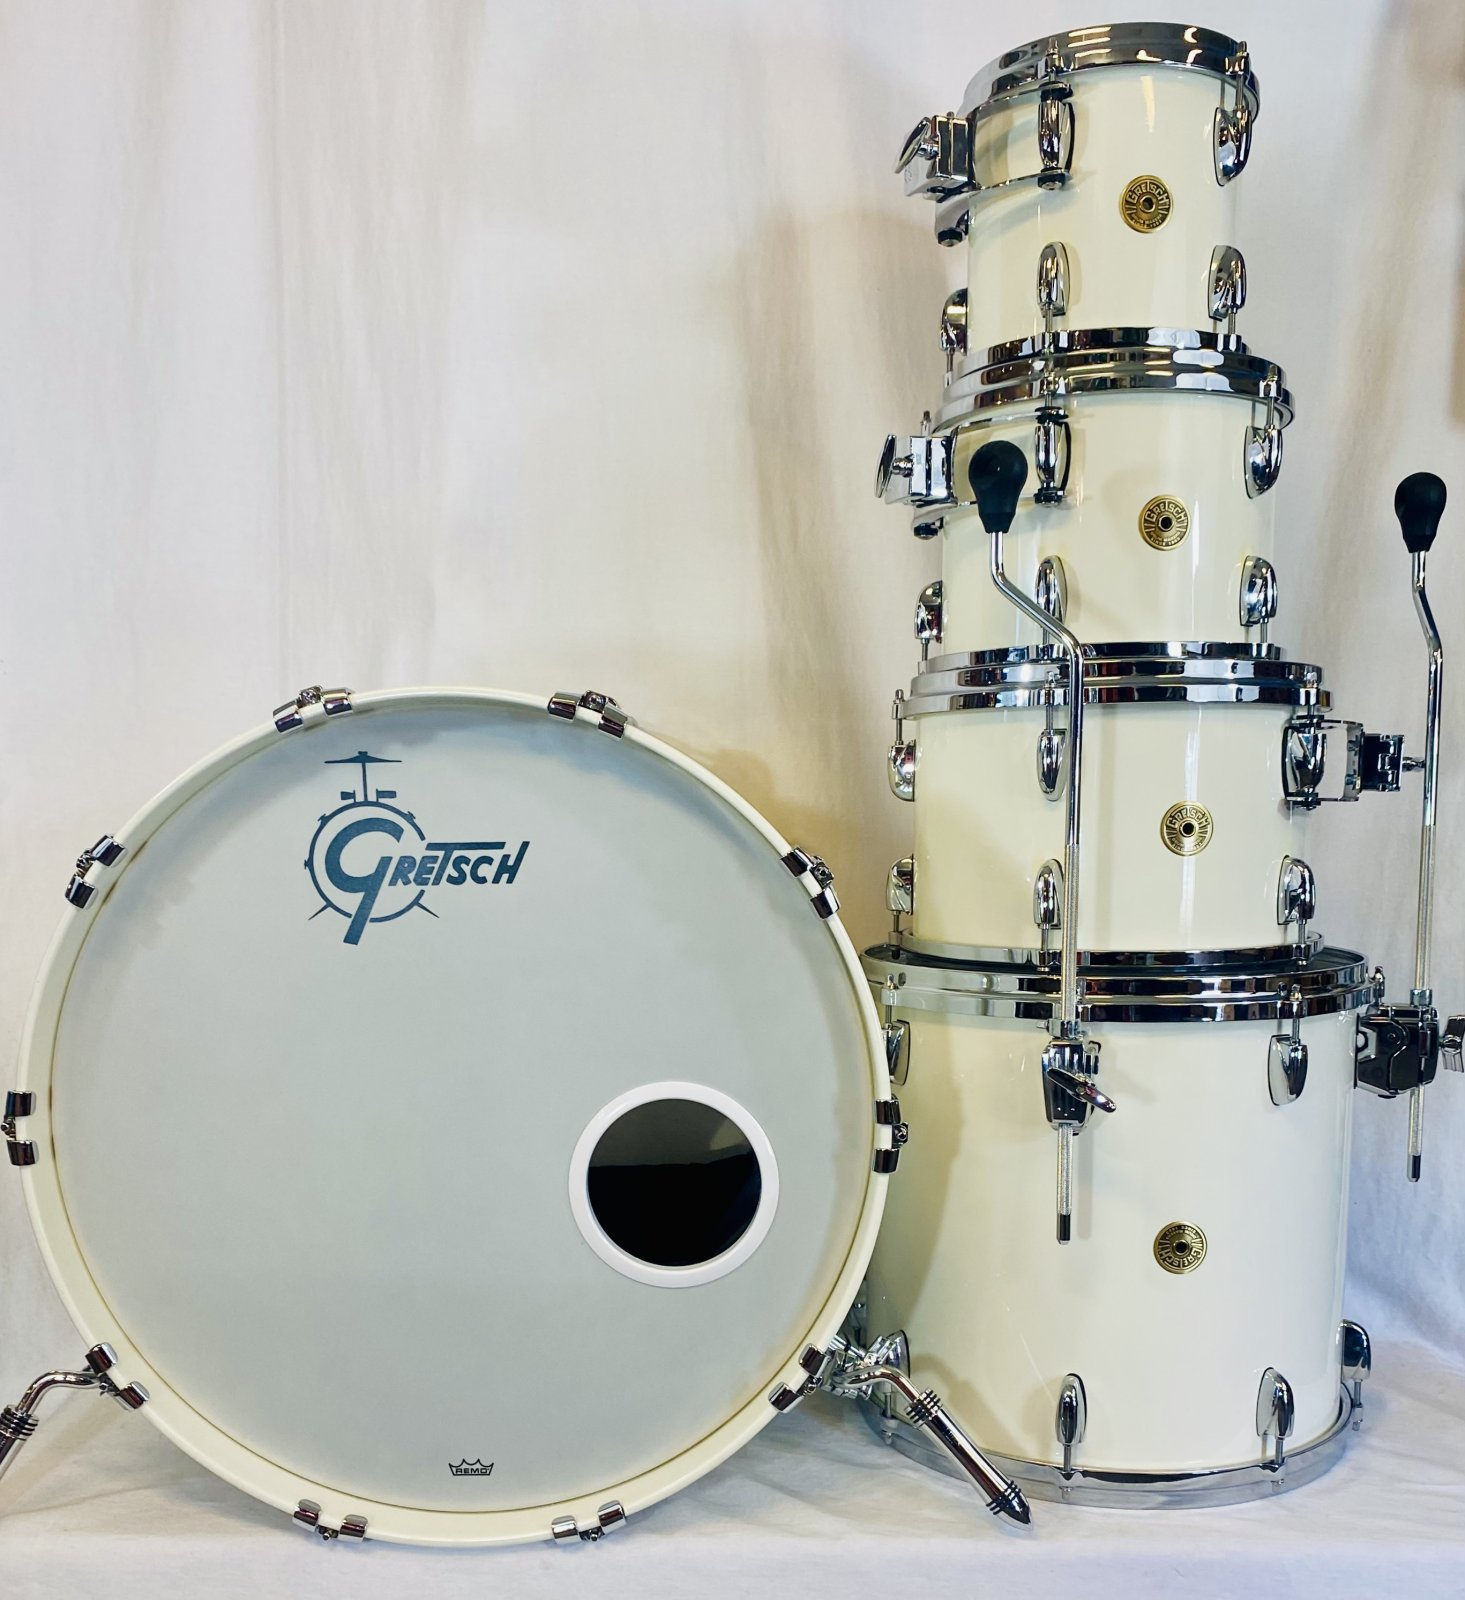 GRETSCH USA DRUM KIT, 5-PEICES, PIANO LACQUER WHITE